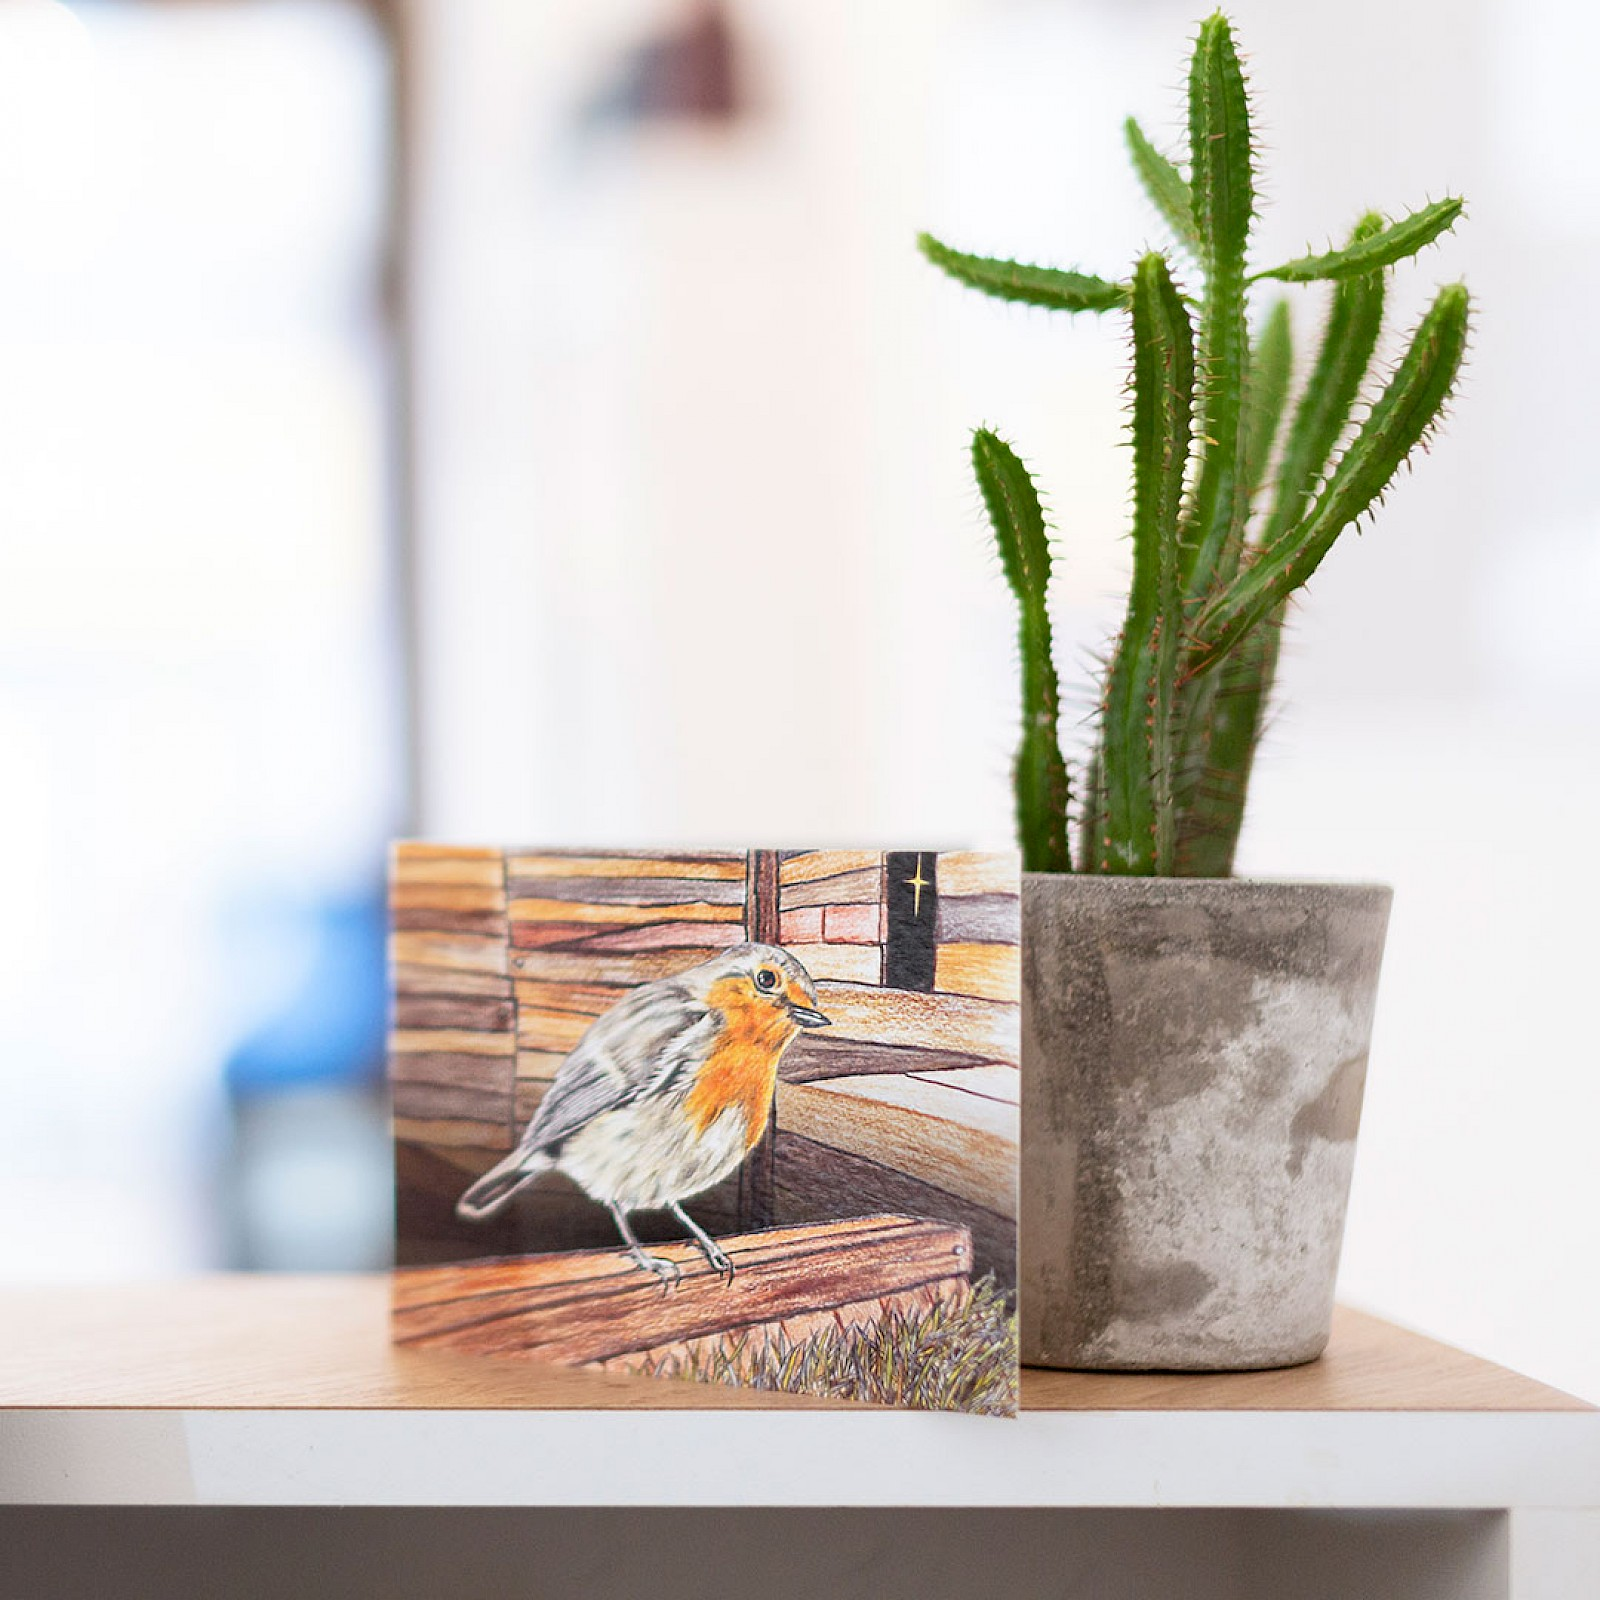 Austin lafferrty reception desk with a picture of a robin